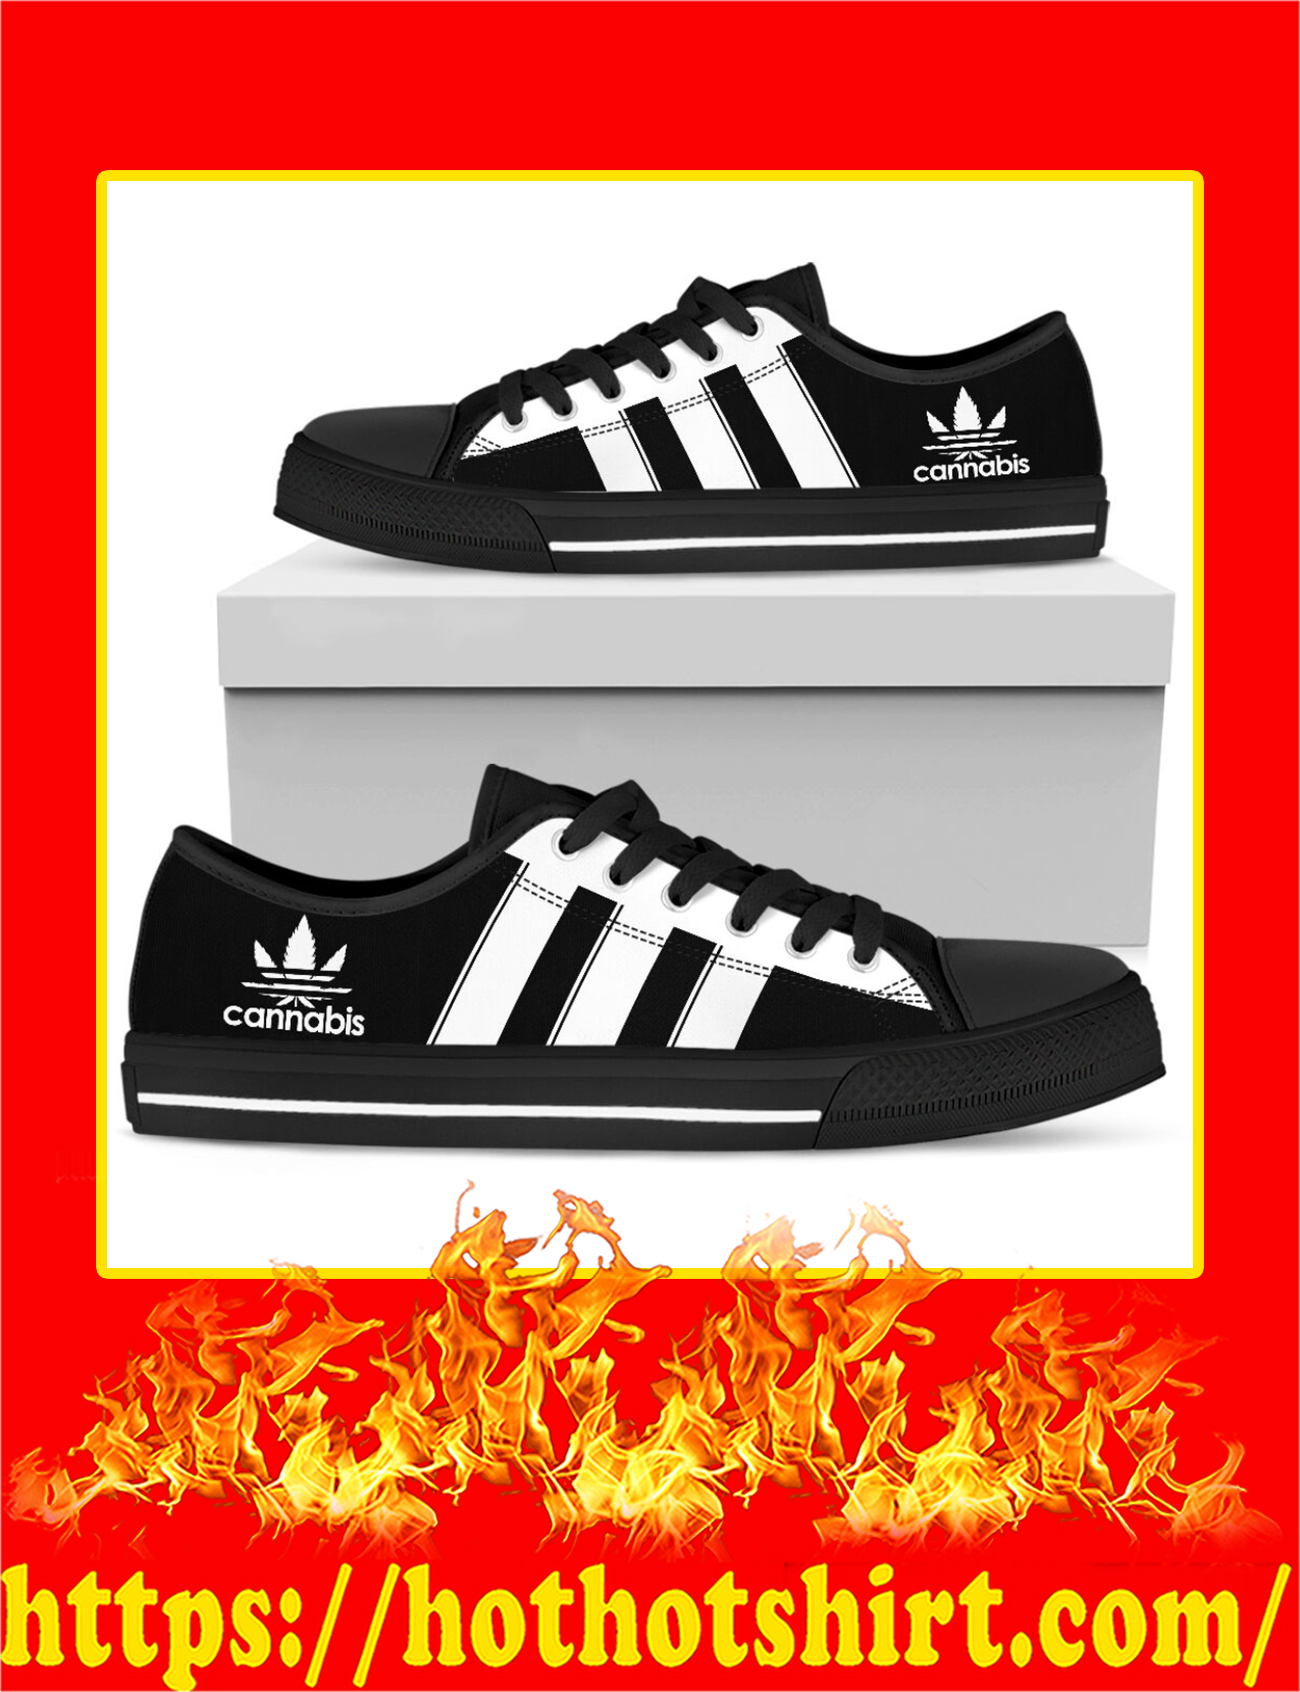 Cannabis Adidas Logo Low Top Shoes - Pic 1